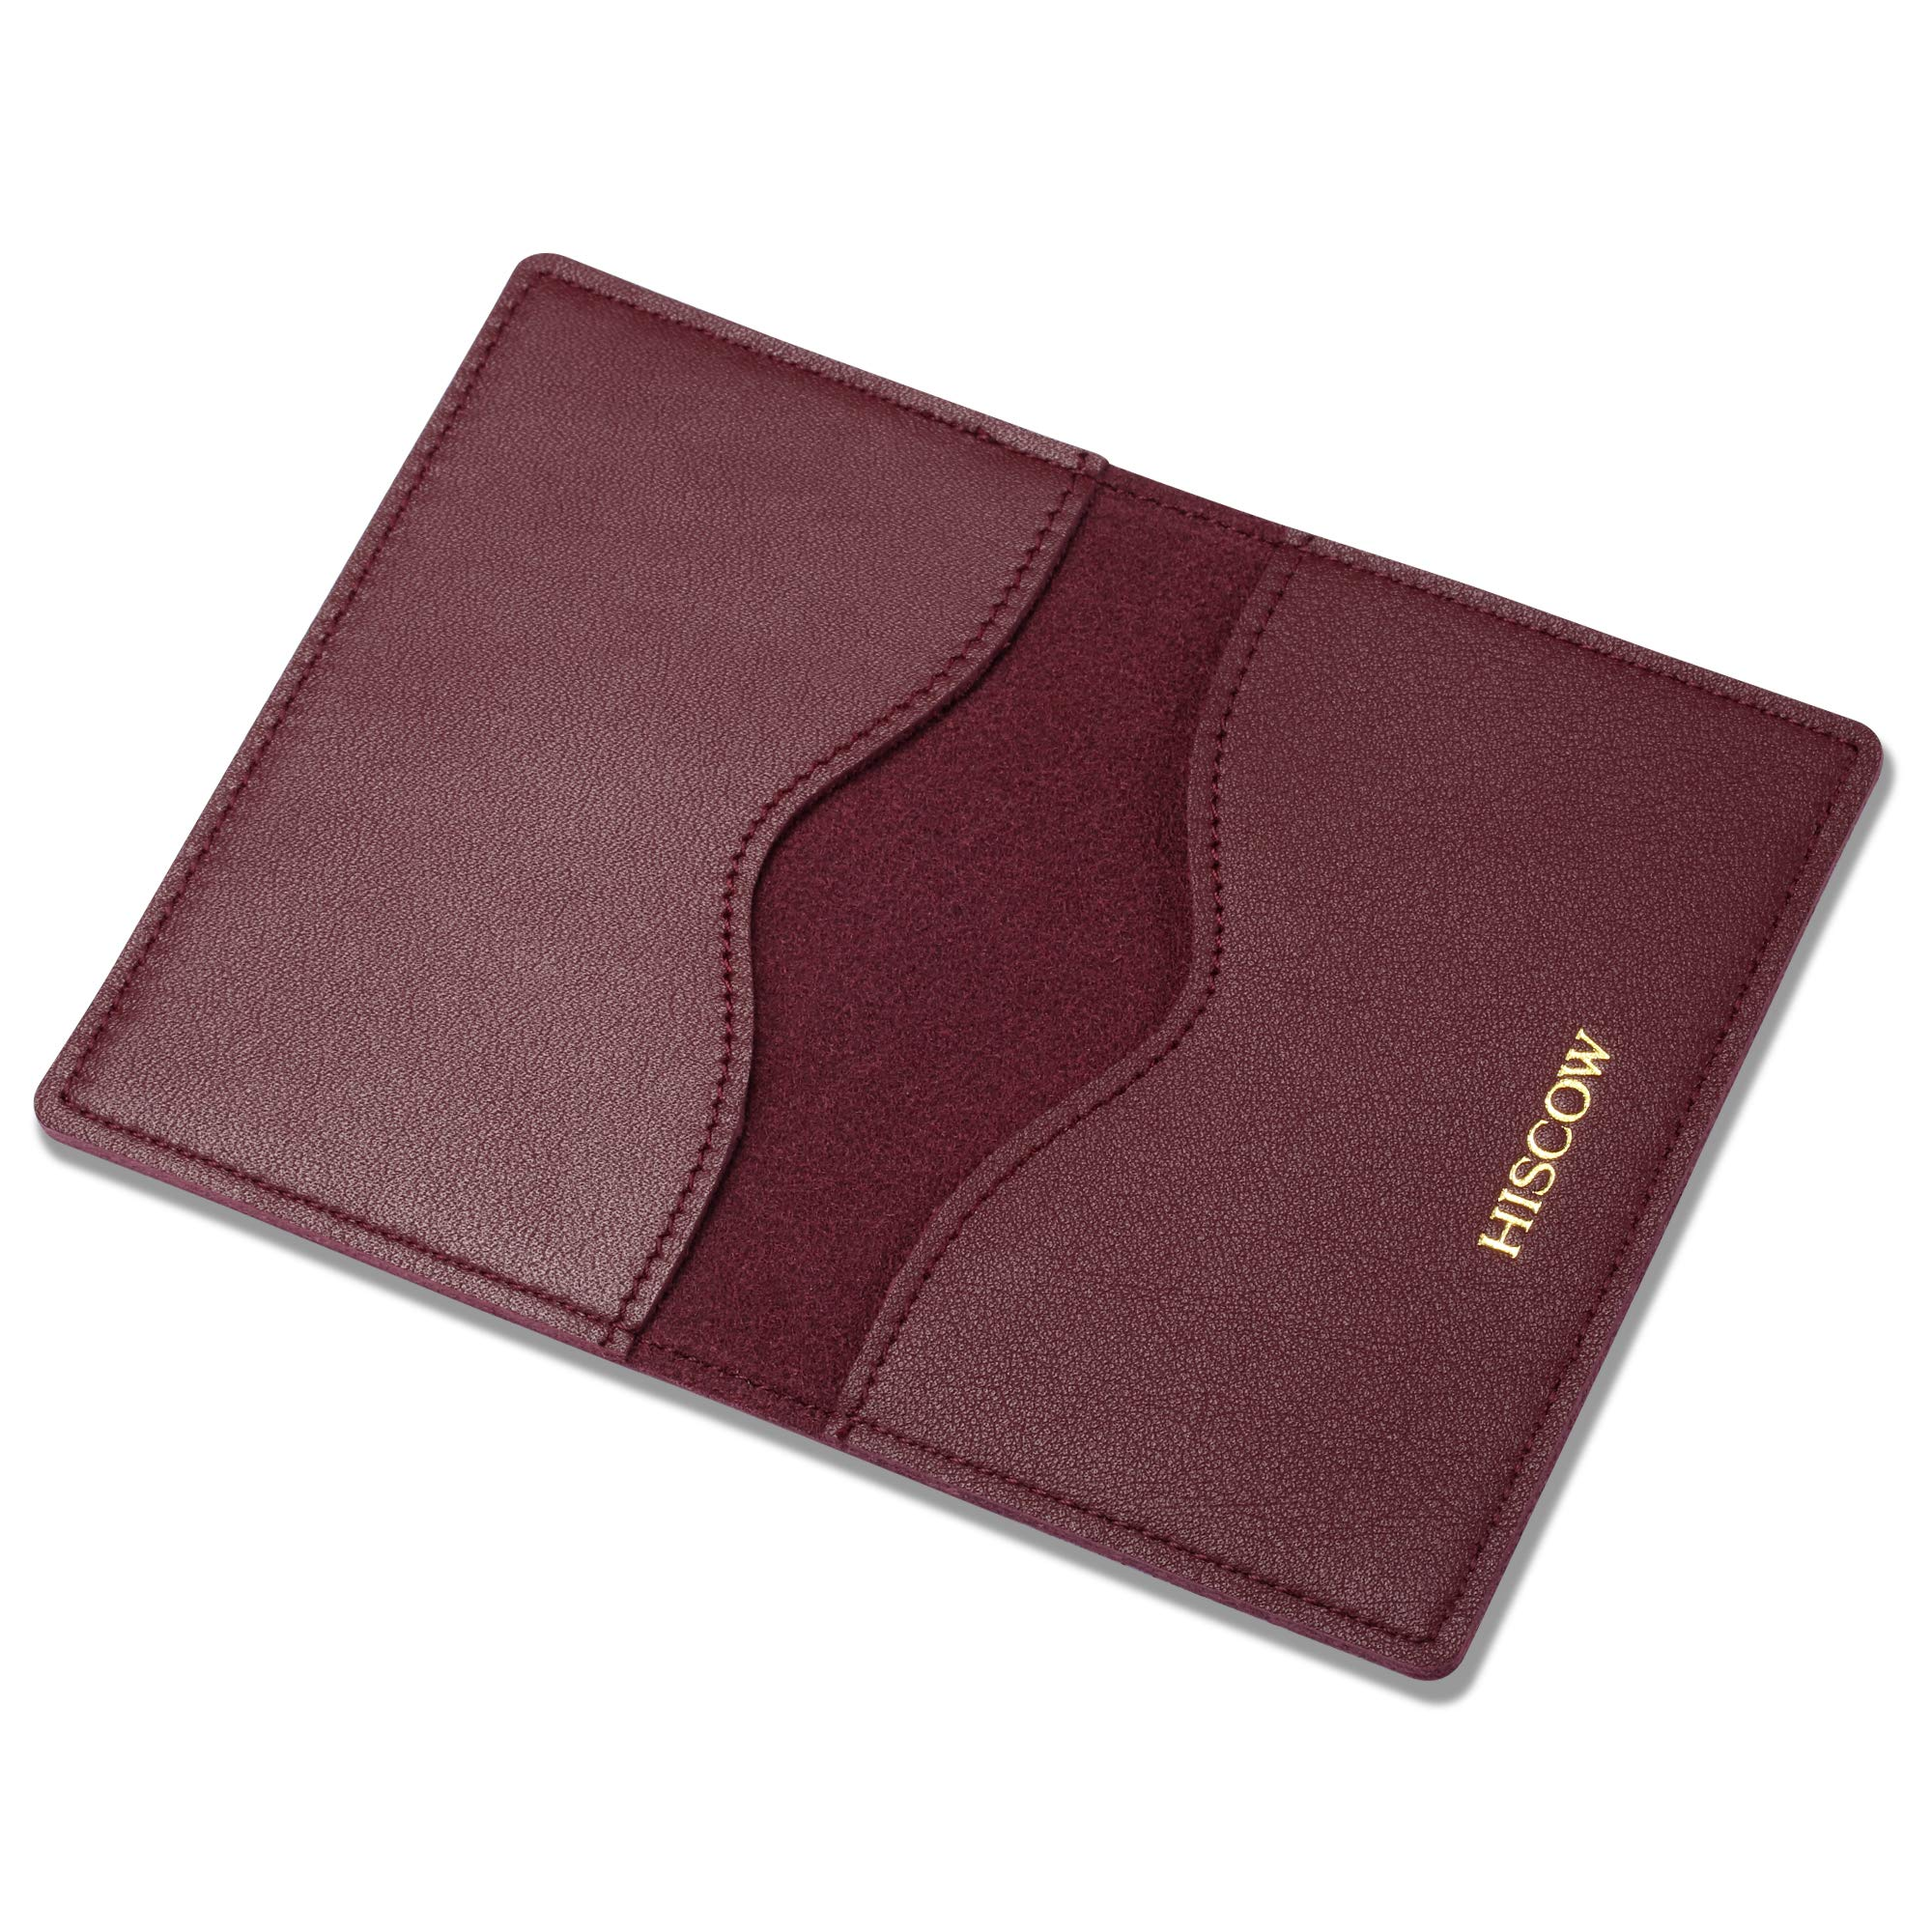 HISCOW Minimalist Thin Bifold Card Holder - Italian Calfskin (Bordeaux) by HISCOW (Image #8)